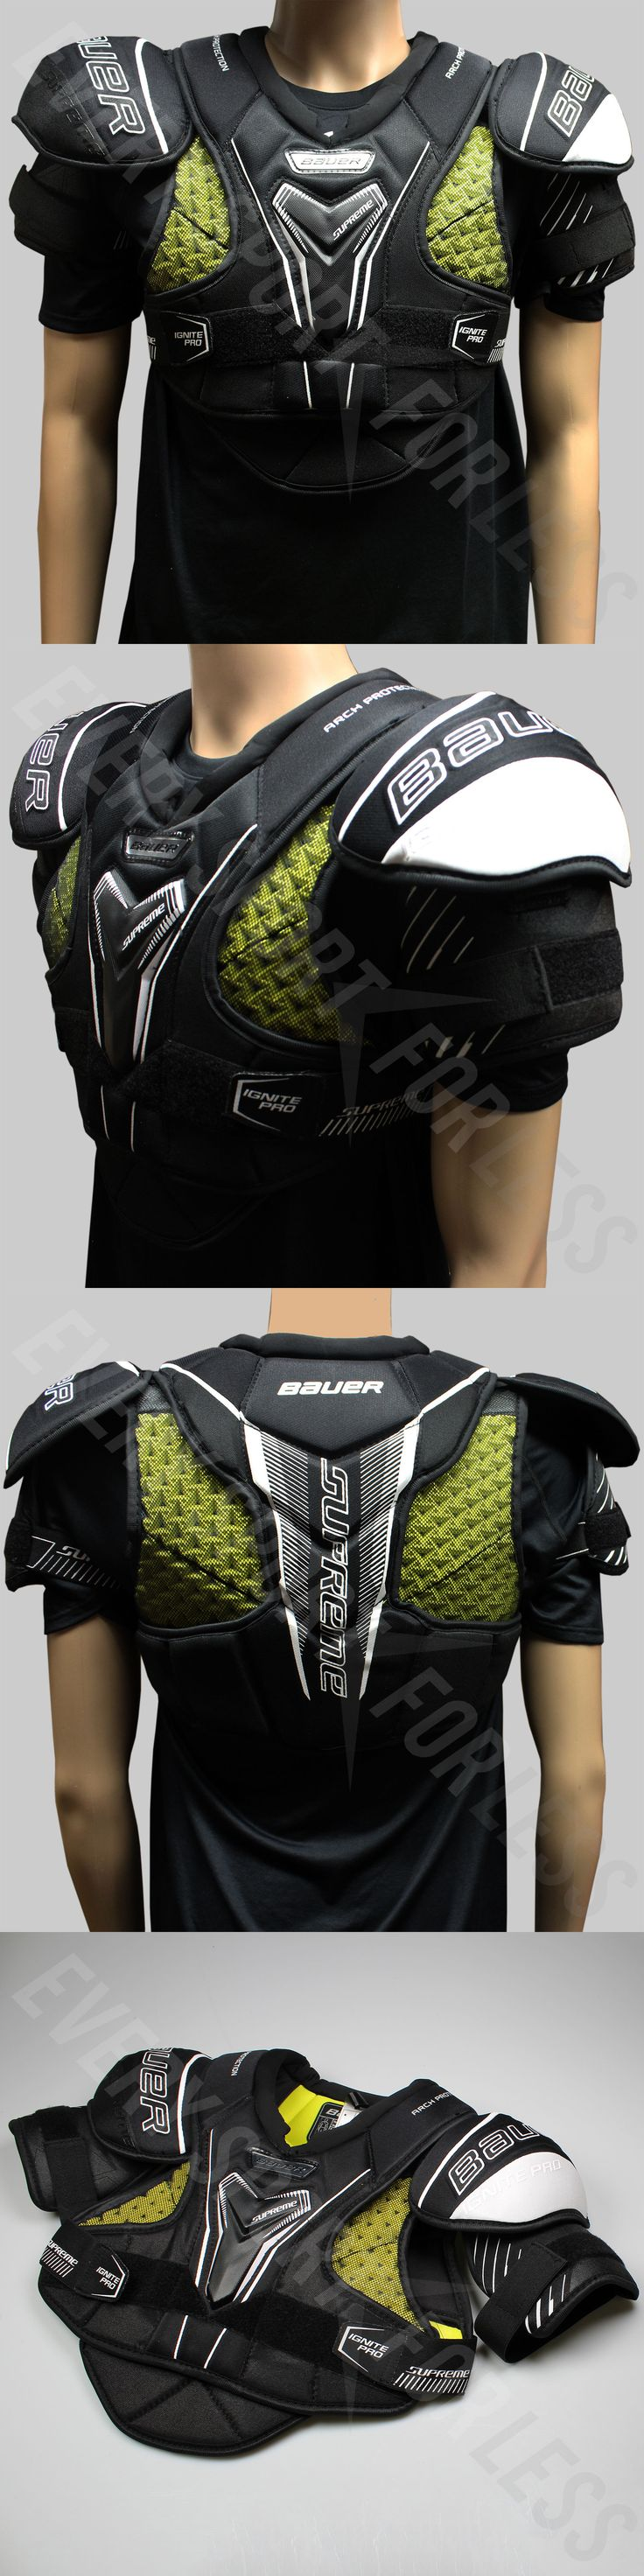 Pads and Guards 20856: Bauer Supreme Ignite Pro Hockey Jr Shoulder Pad - Special Make Up(New)Lists@$99 -> BUY IT NOW ONLY: $89.99 on eBay!